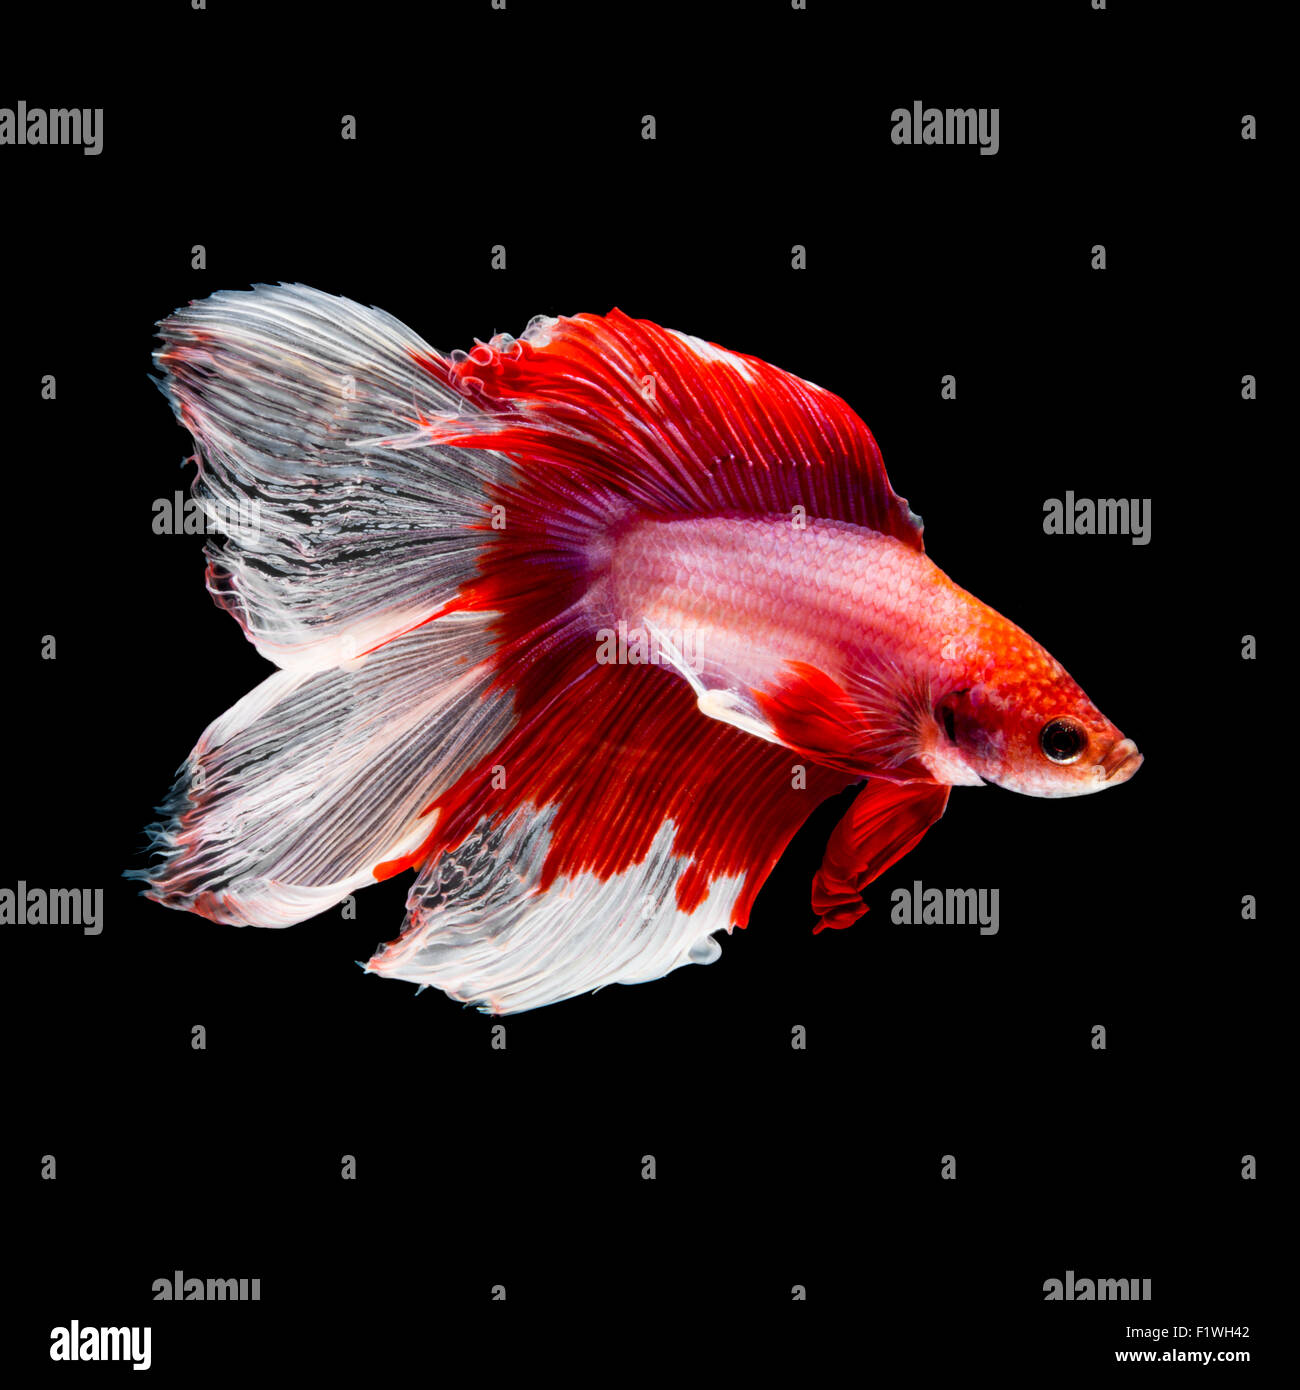 Red and white siamese fighting fish, betta fish, two tail profile ...